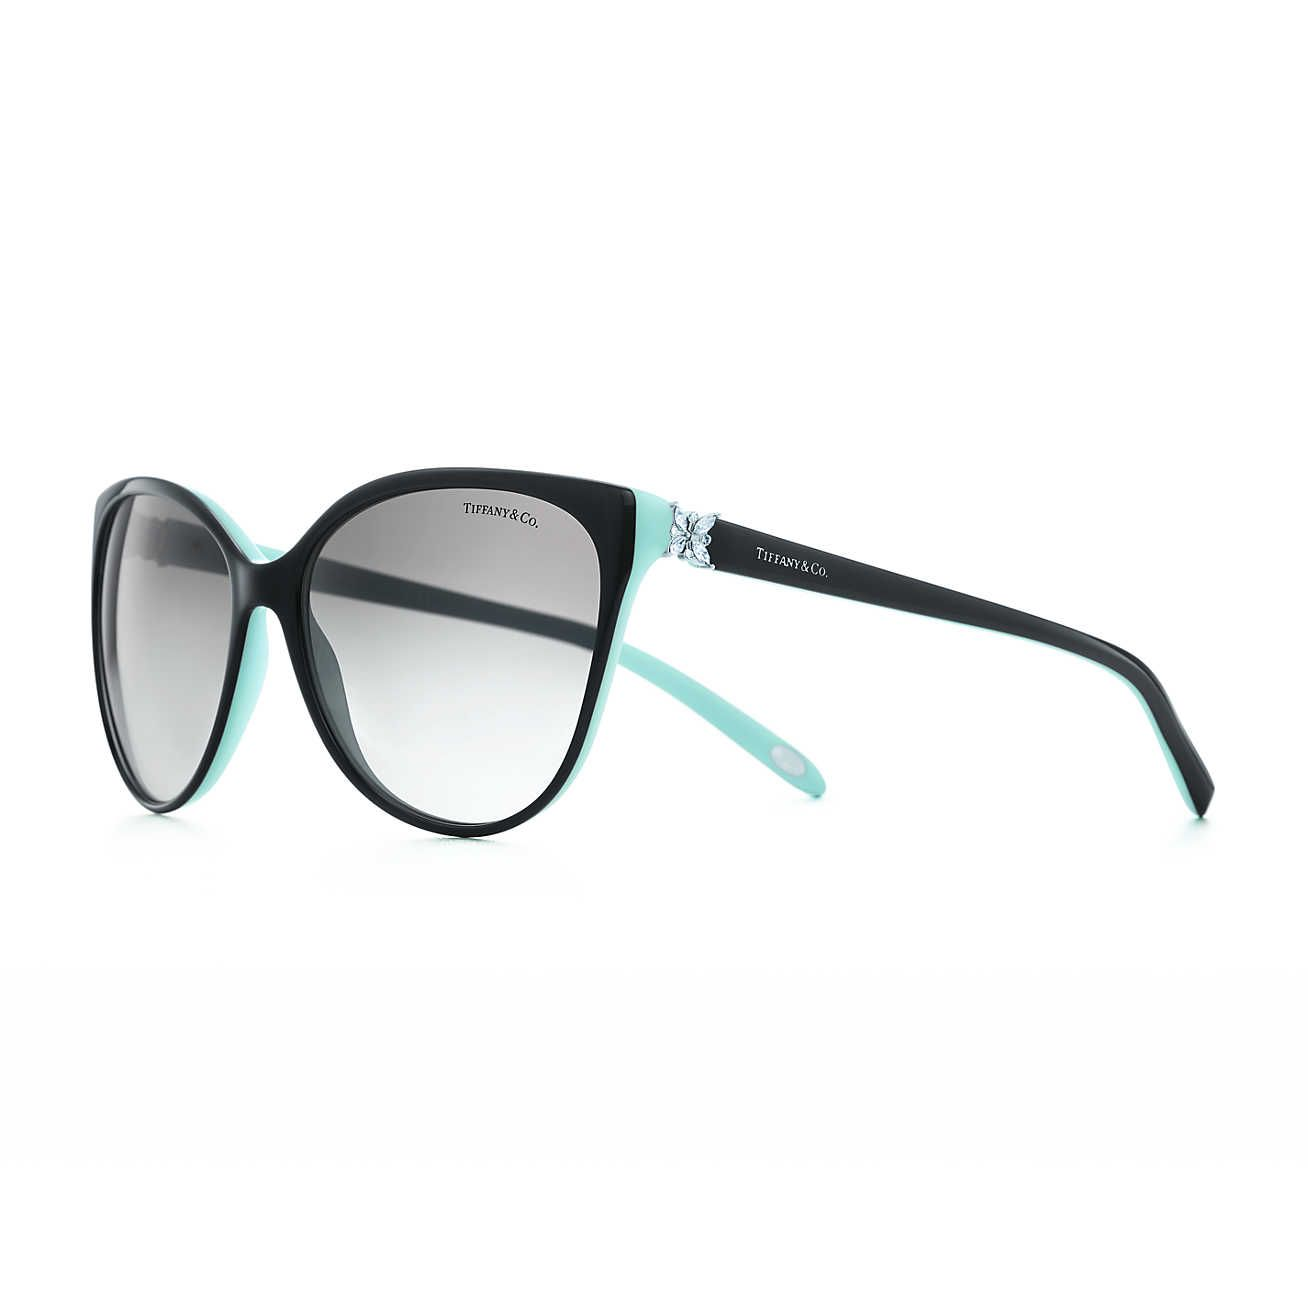 c2019f6abf45 Tiffany Victoria® cat eye sunglasses in acetate with Austrian crystals.